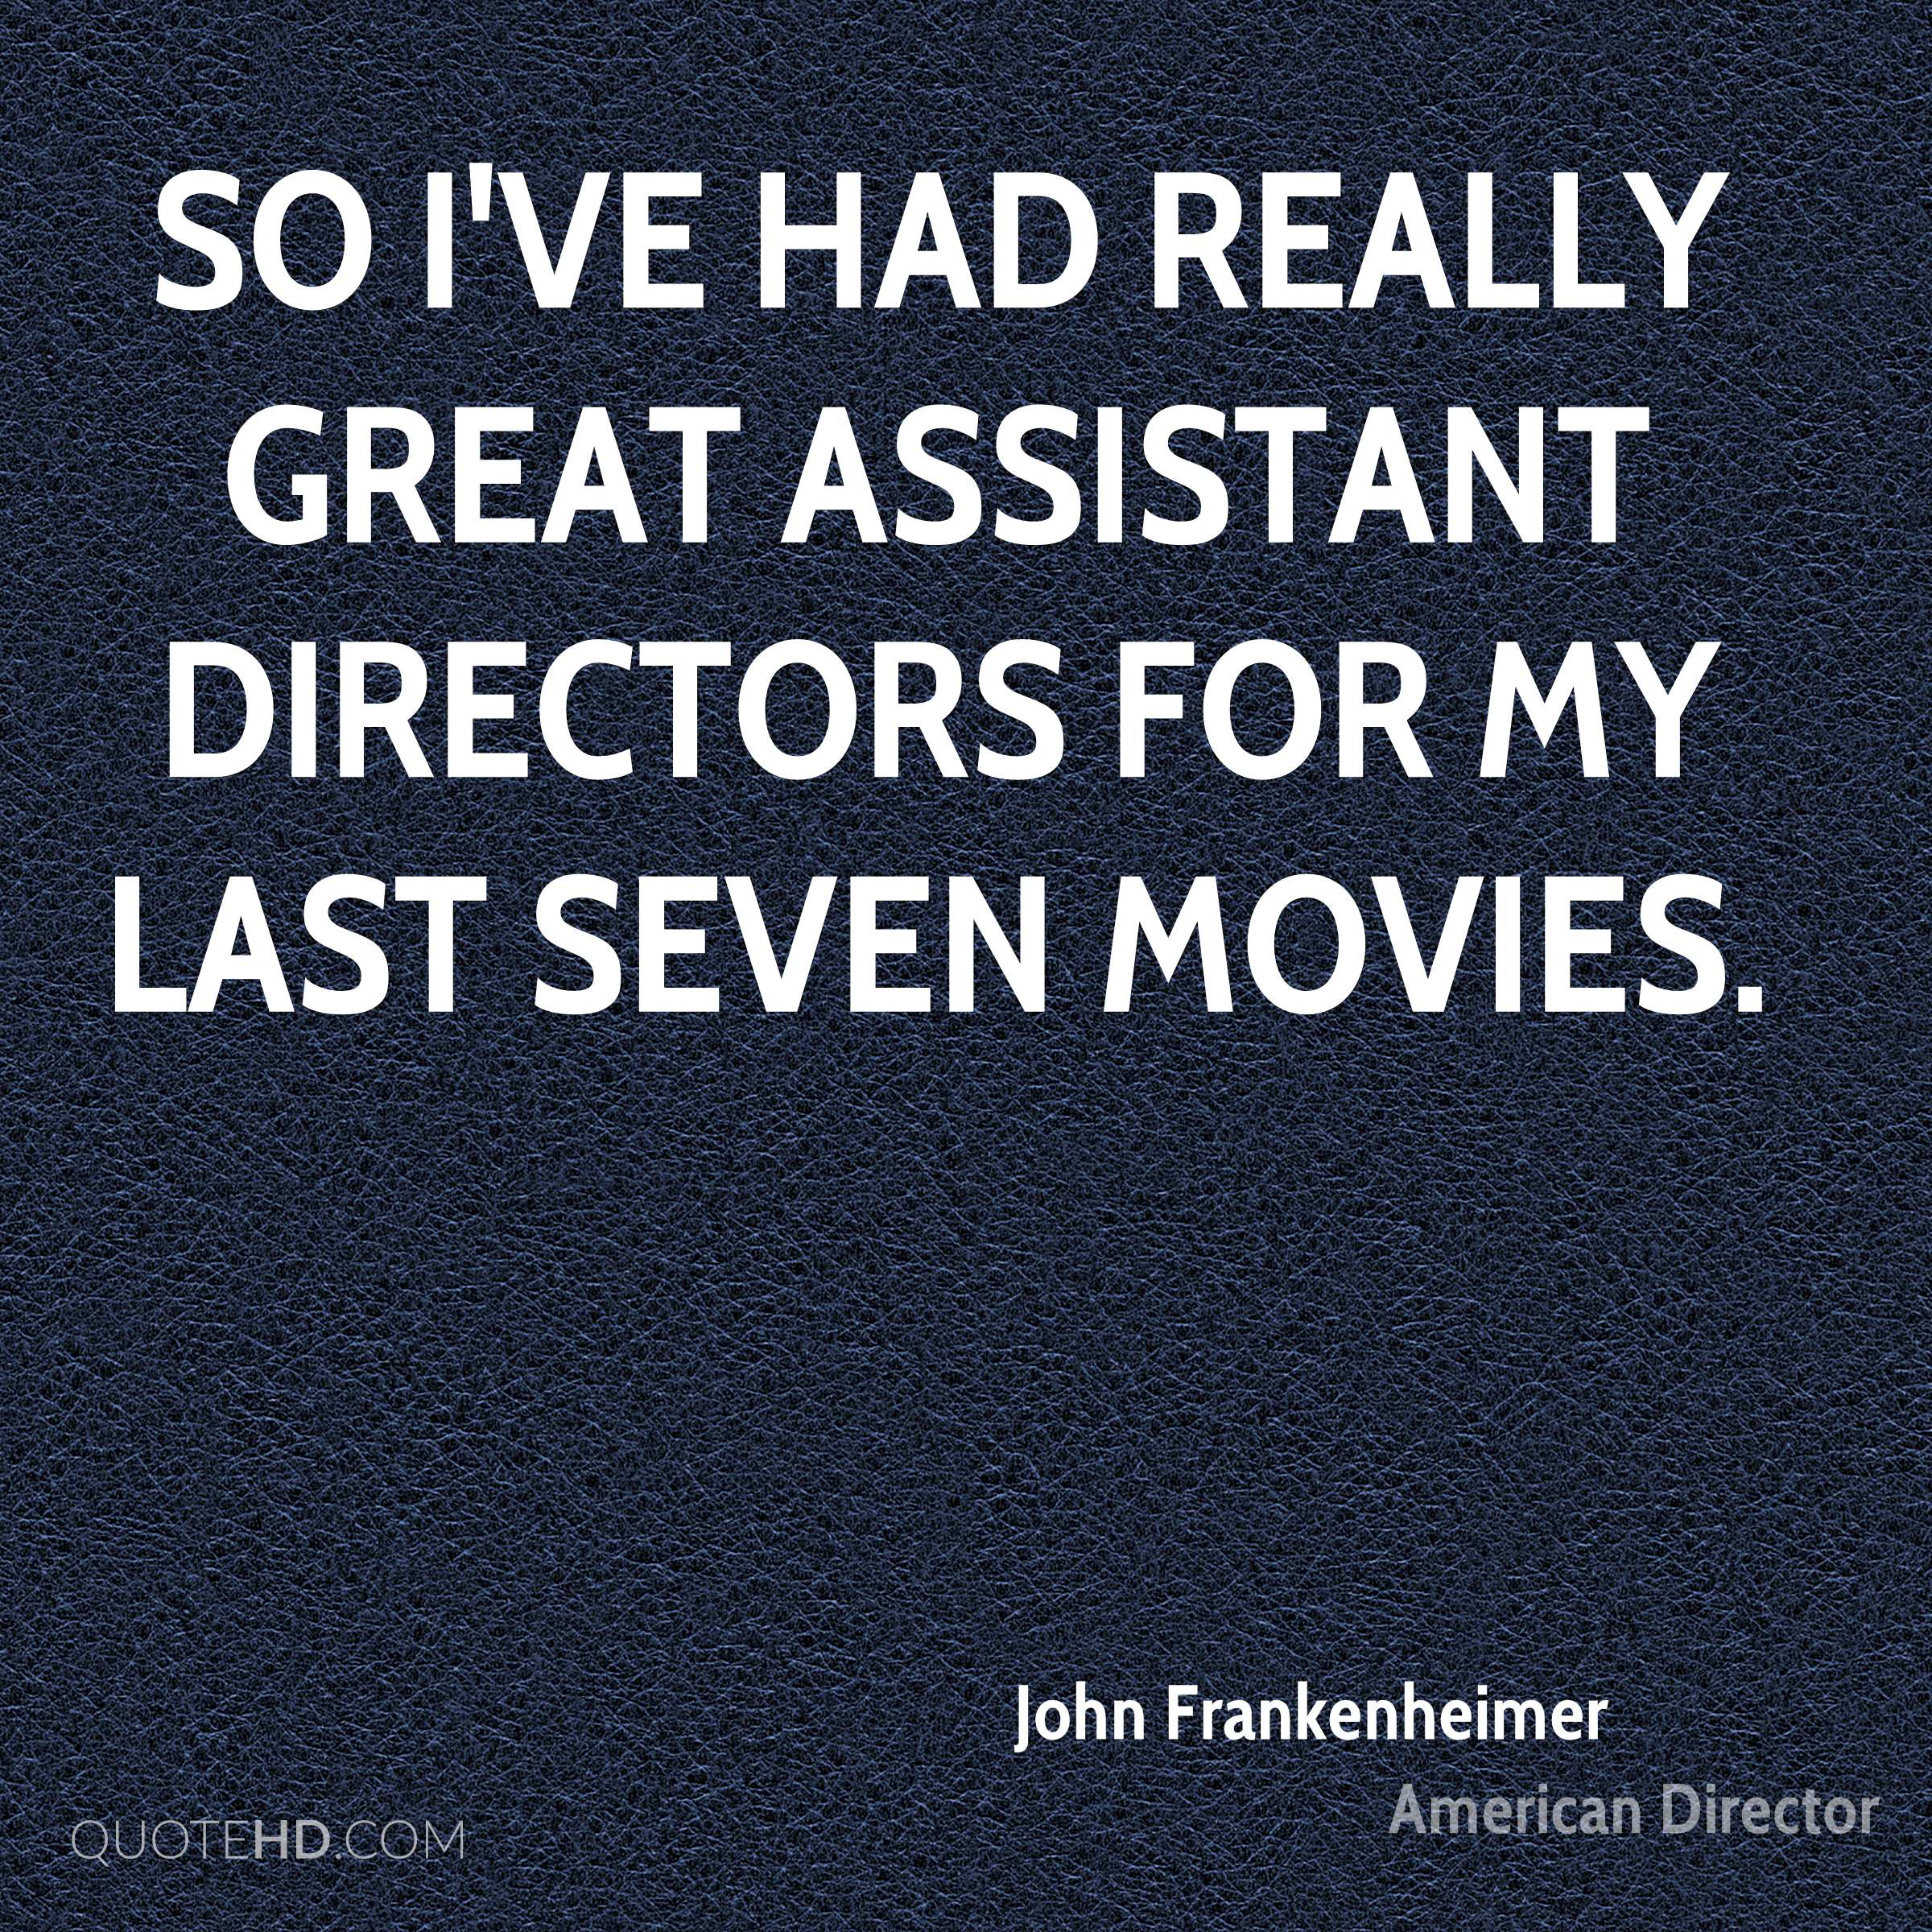 So I've had really great assistant directors for my last seven movies.